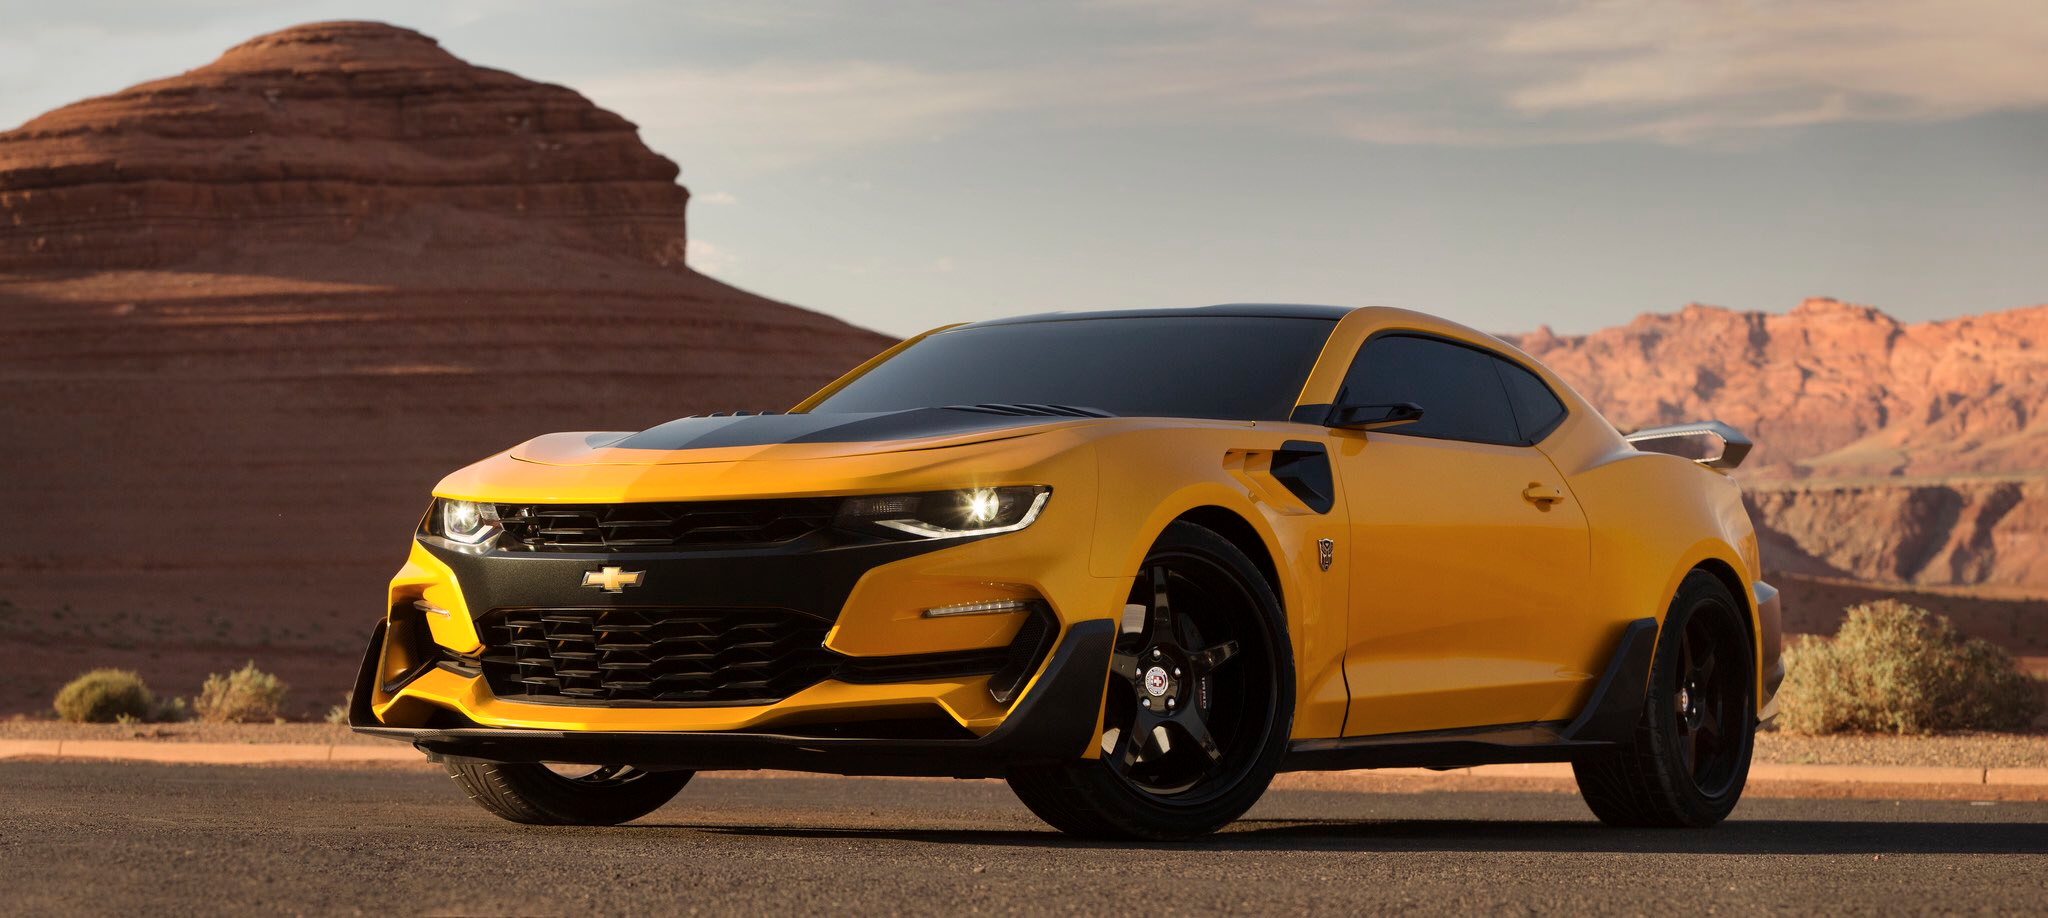 Michael Bay Shows Off Bumblebee's Latest Wheels